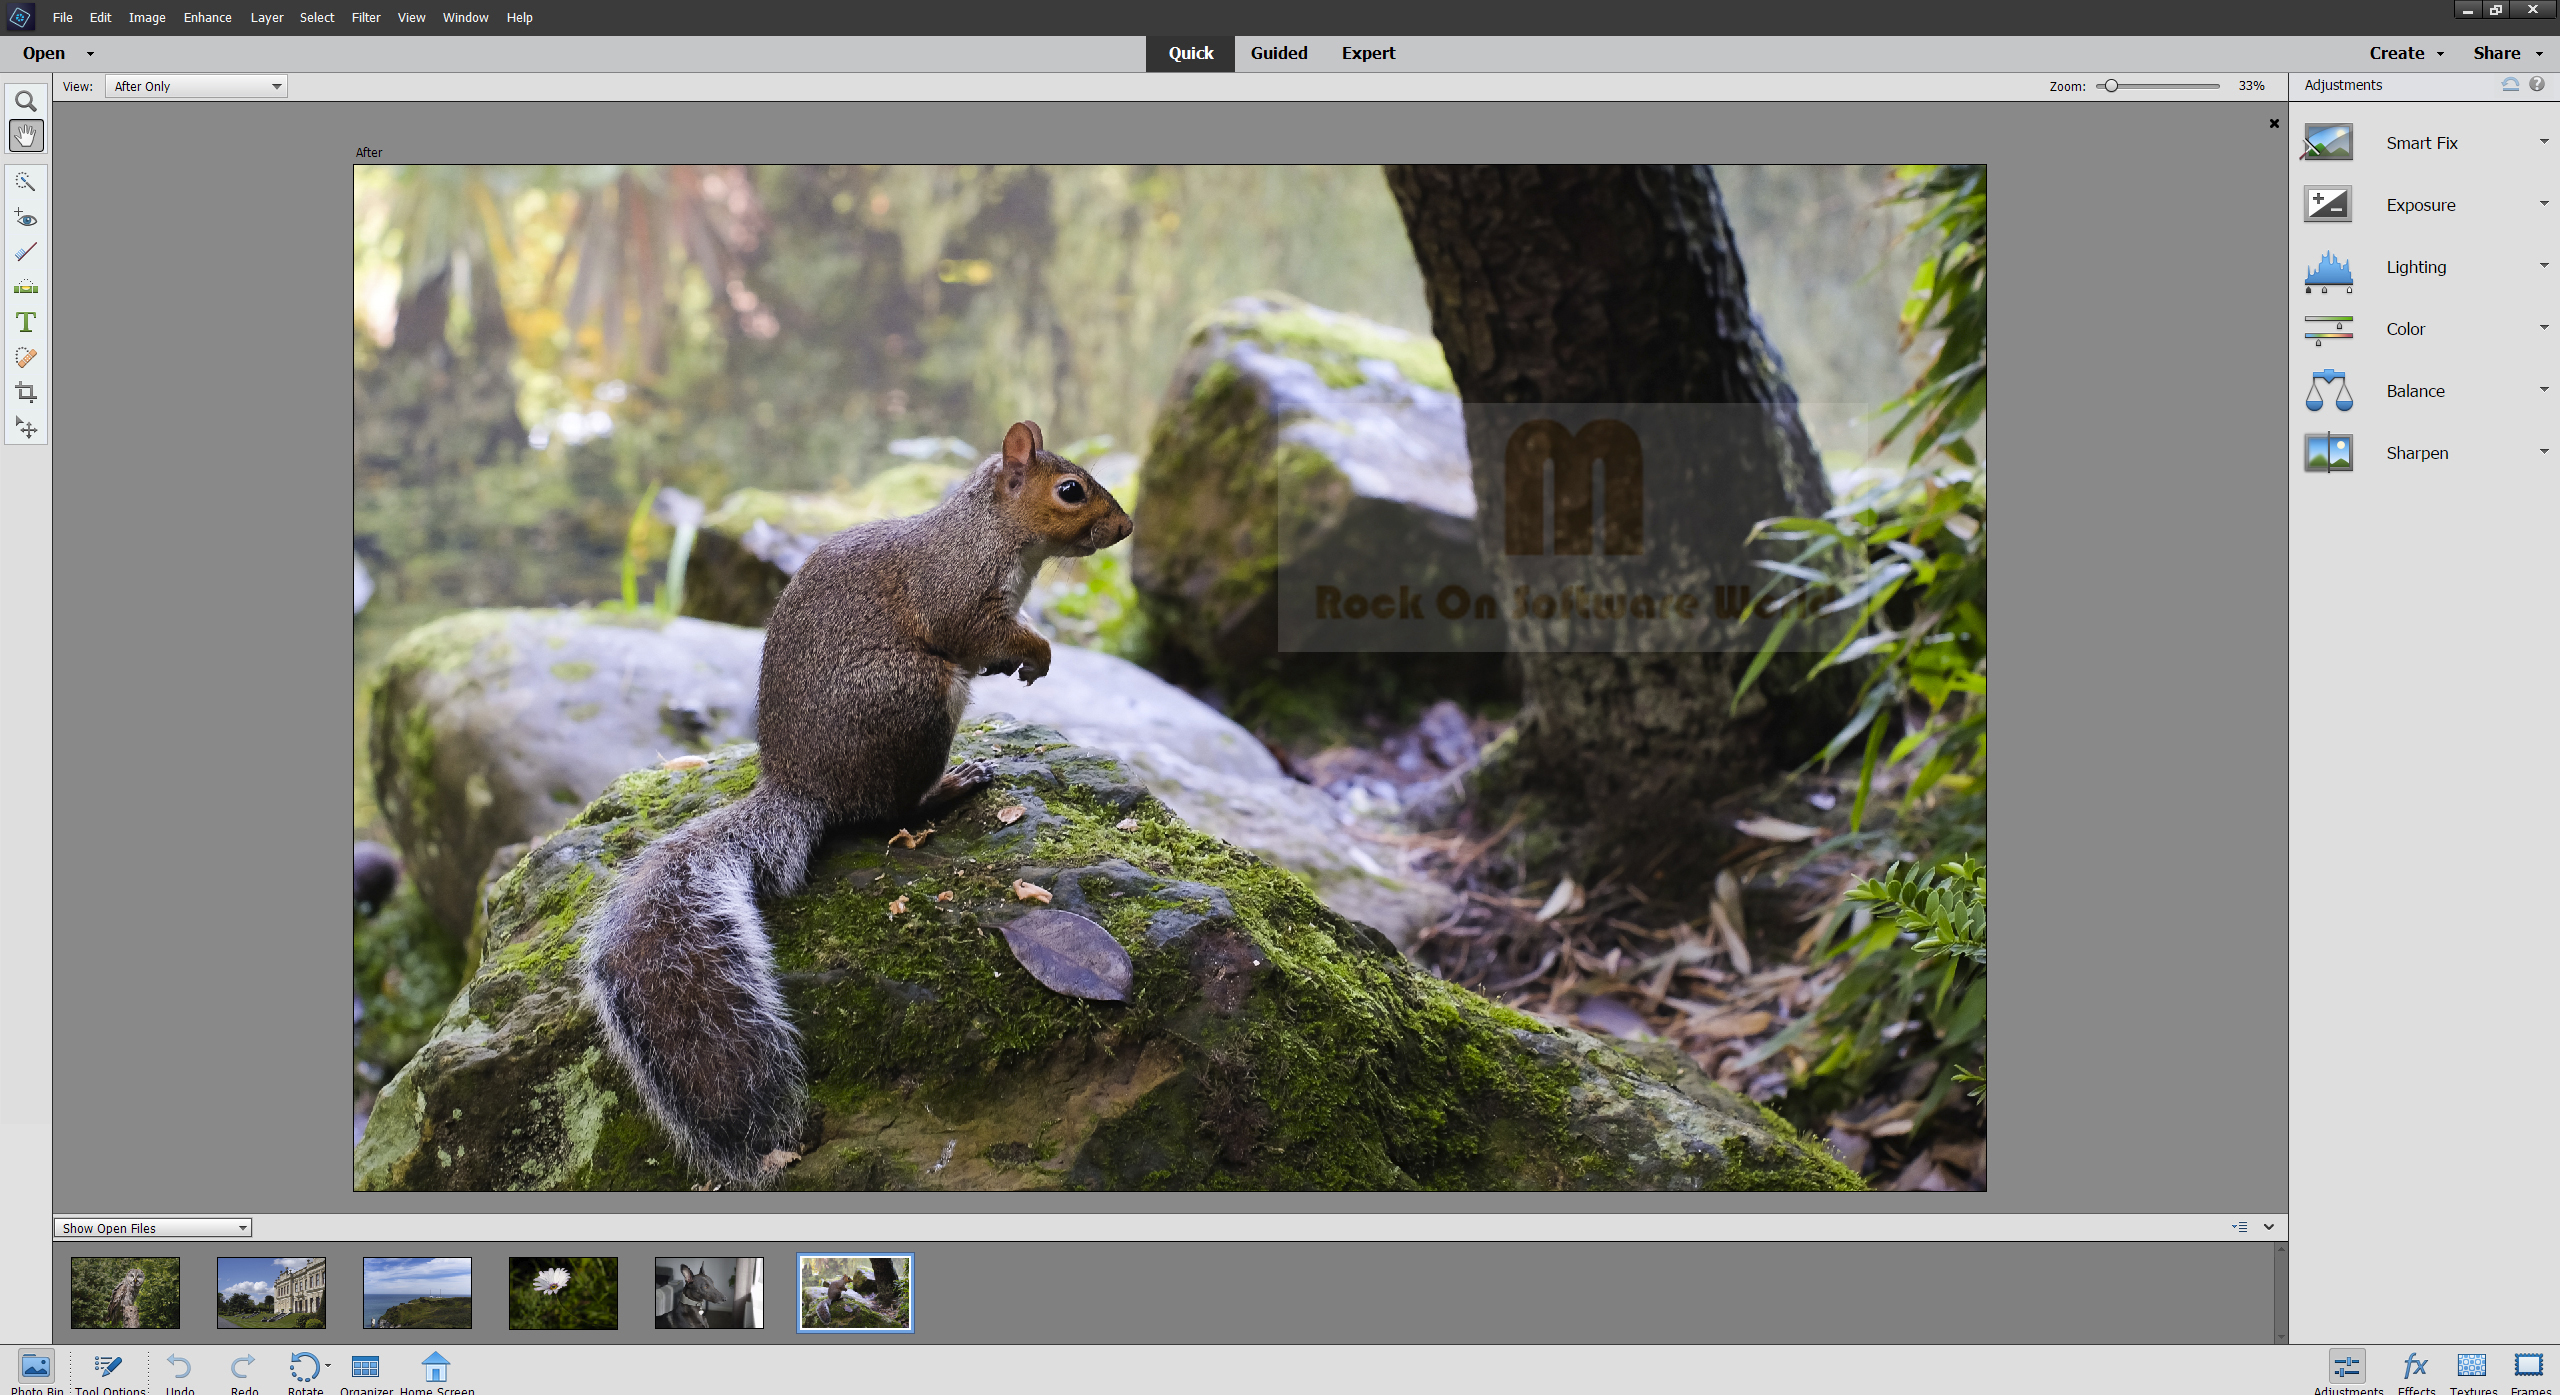 adobe photoshop elements 2019 free download full version